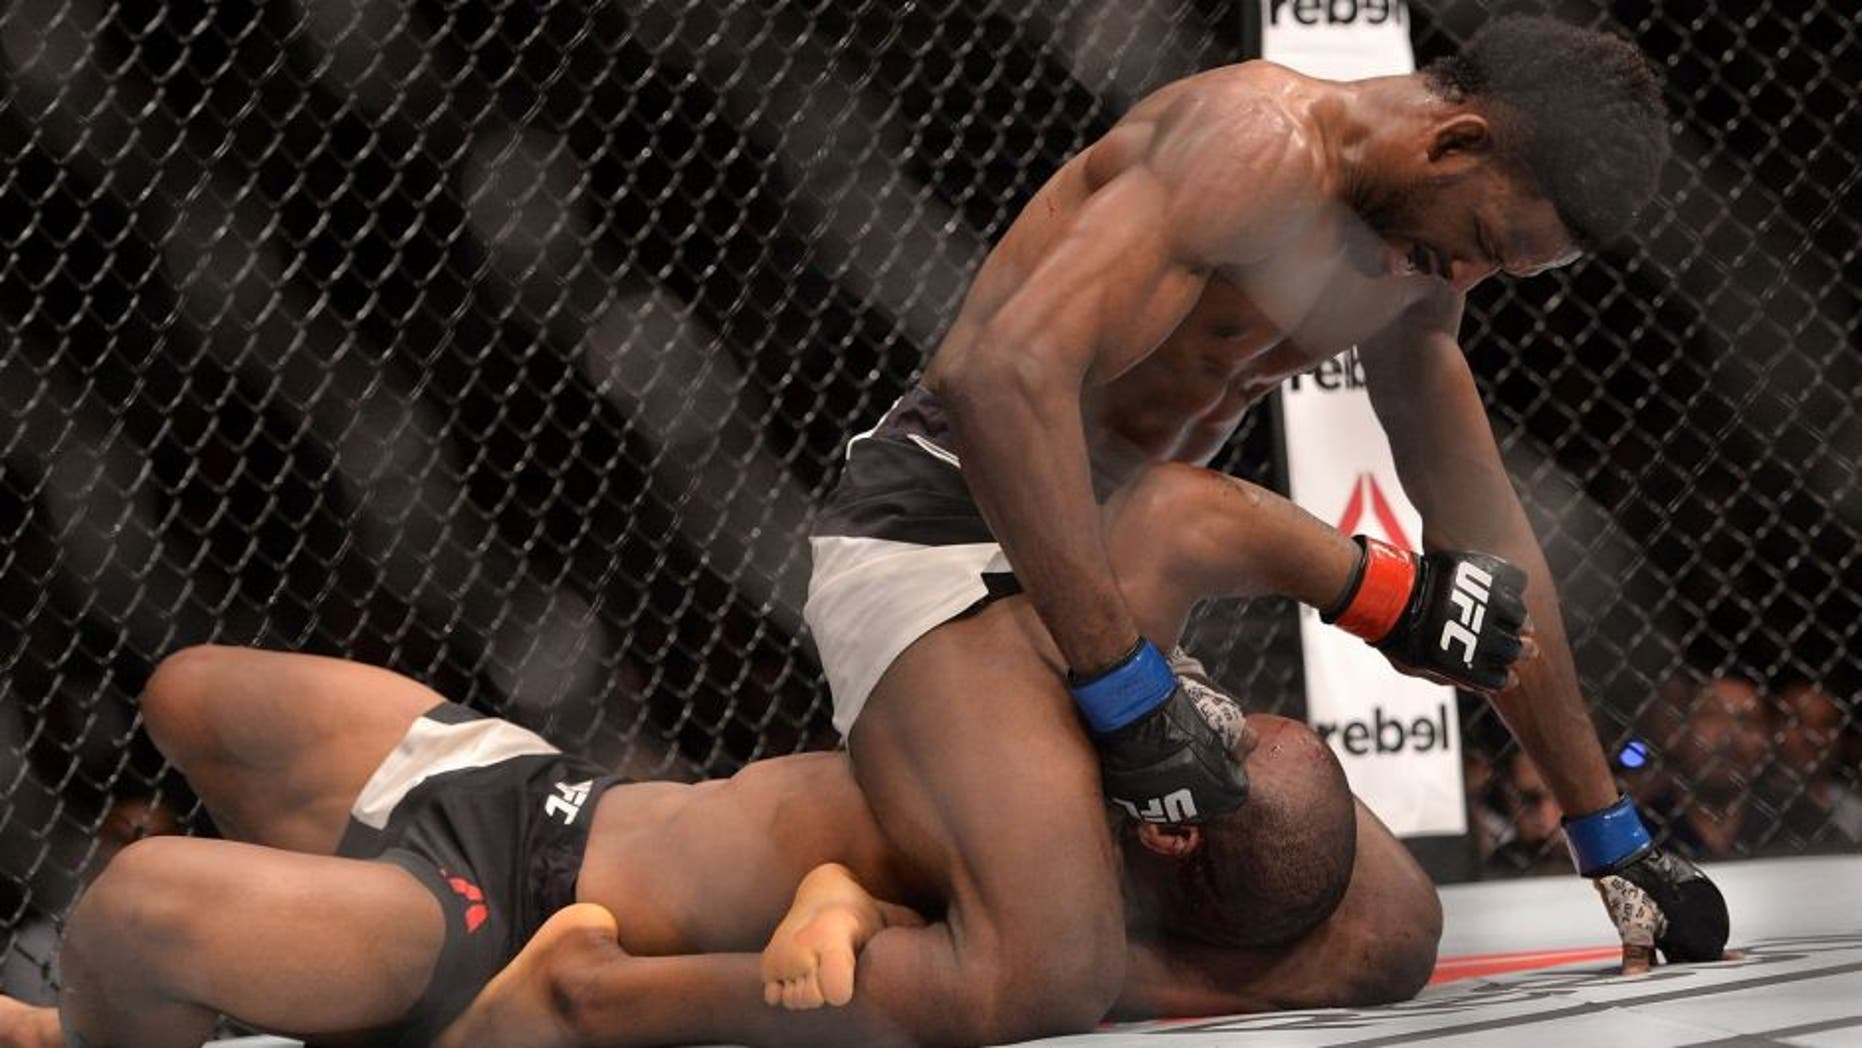 BRISBANE, AUSTRALIA - MARCH 20: Neil Magny dominates against Hector Lombard during their UFC Welterweight Bout at UFC Brisbane on March 20, 2016 in Brisbane, Australia. (Photo by Bradley Kanaris/Getty Images)